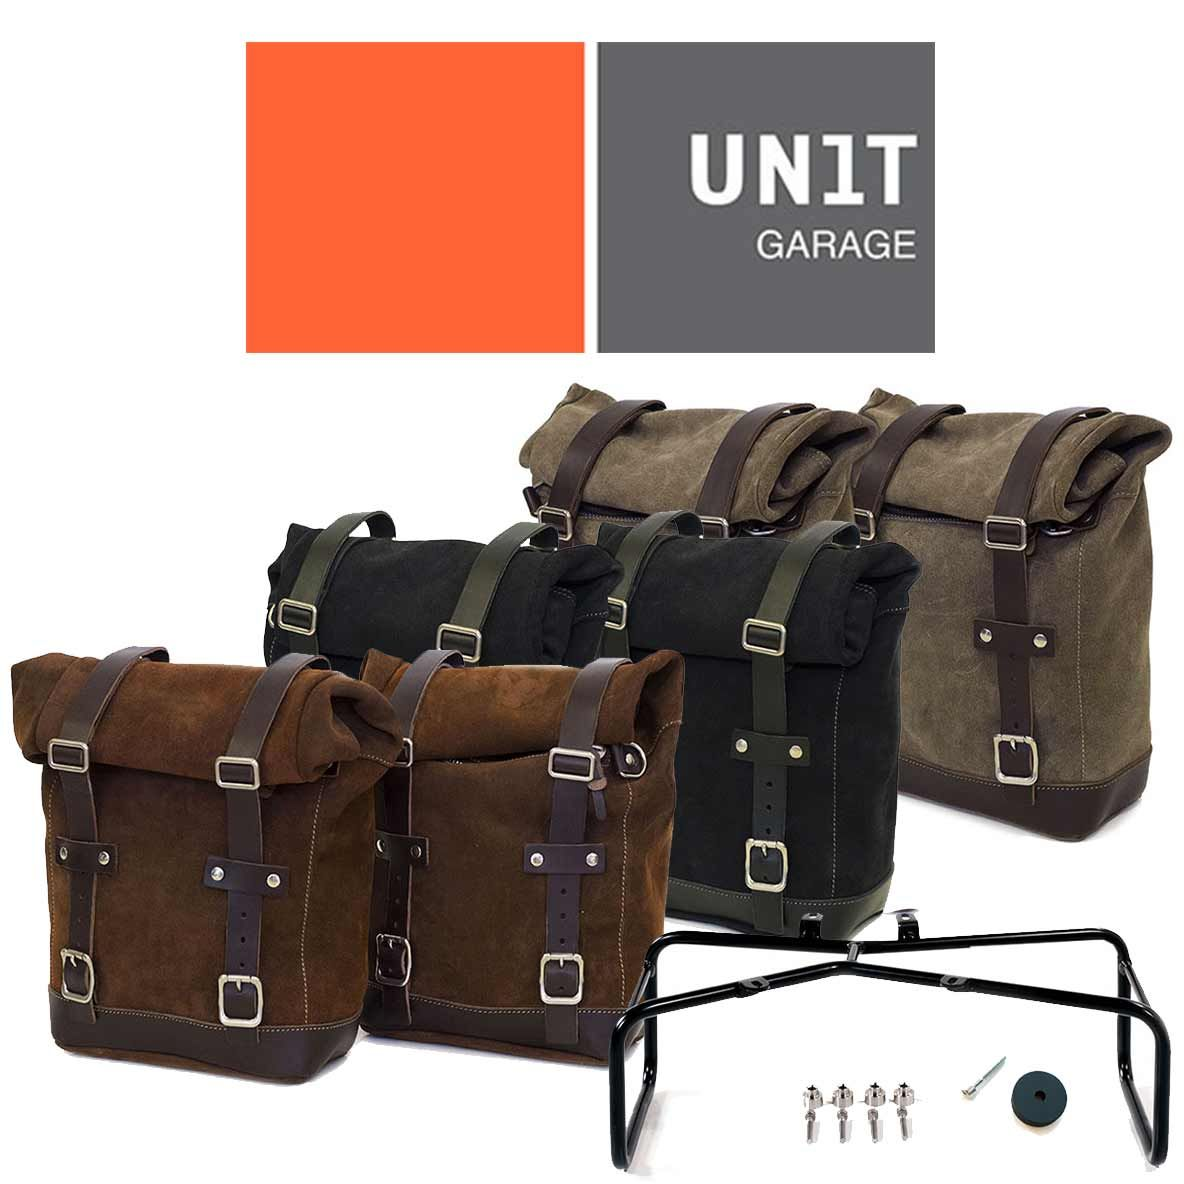 Unit Garage Pair of Leather Straps for Luggage Rack